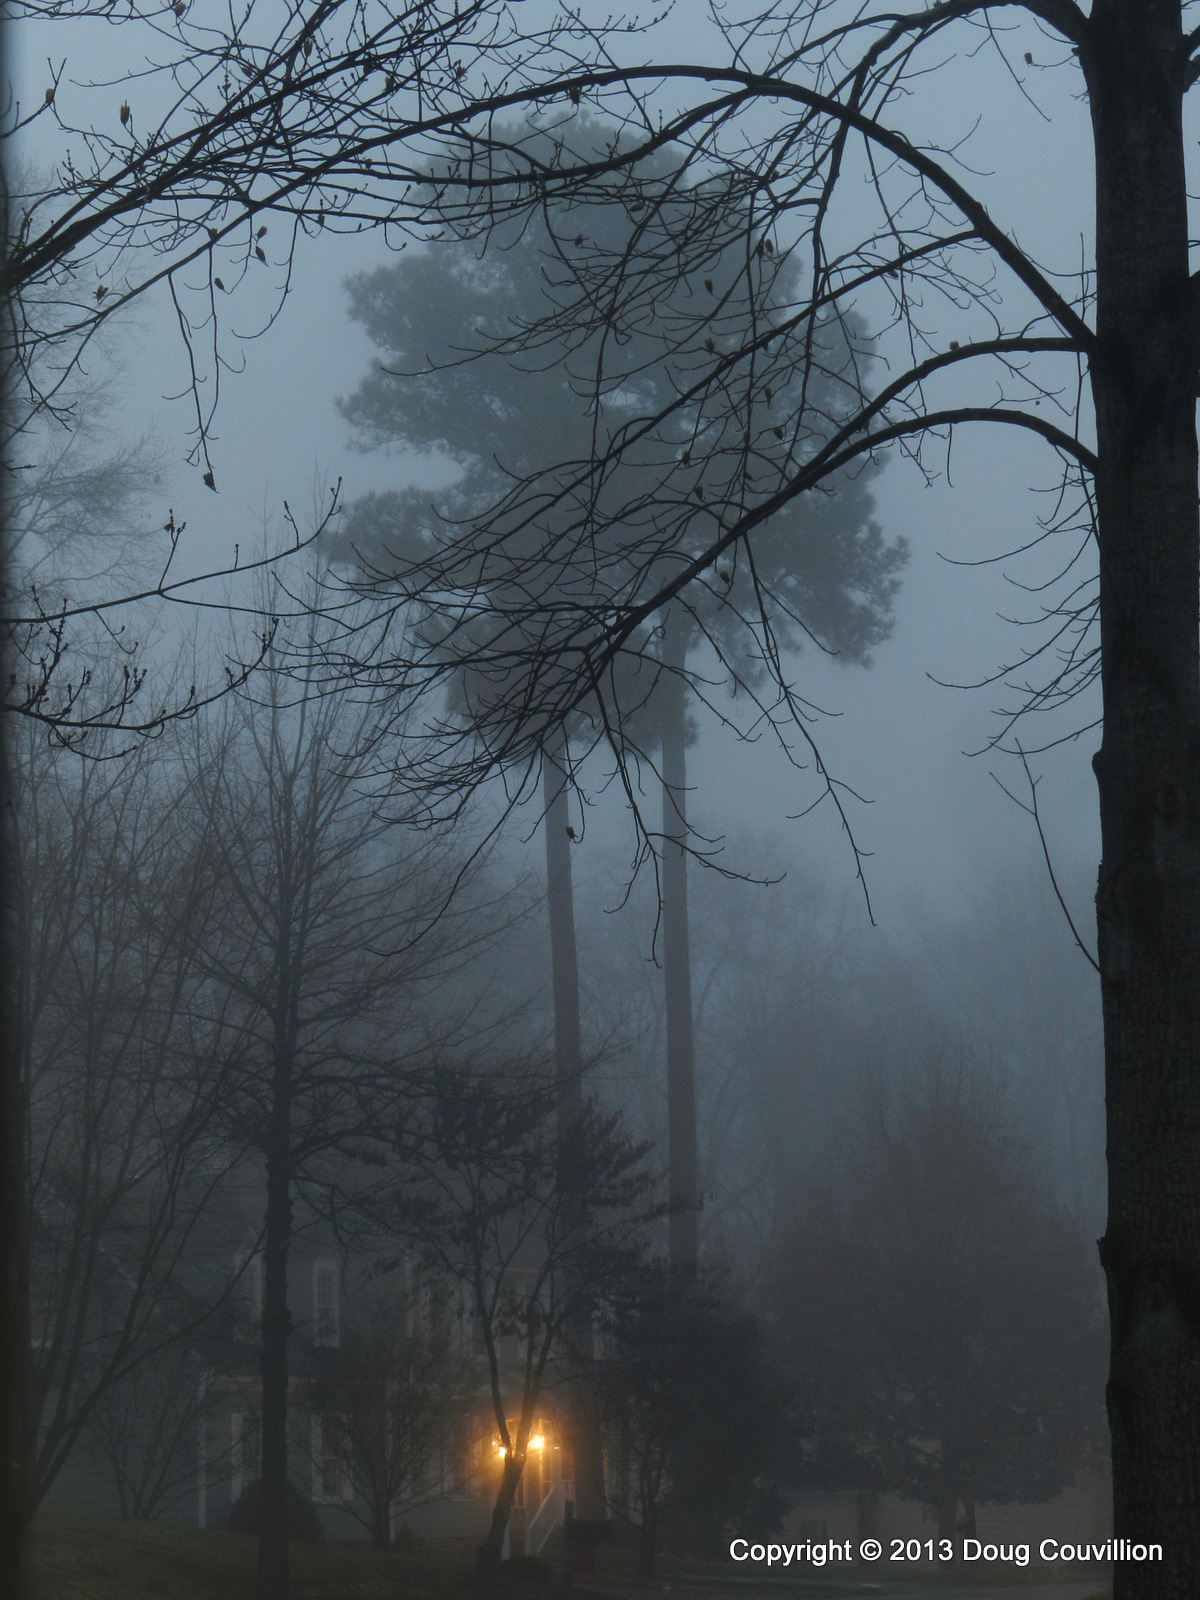 photograph of a suburban street in the early morning fog